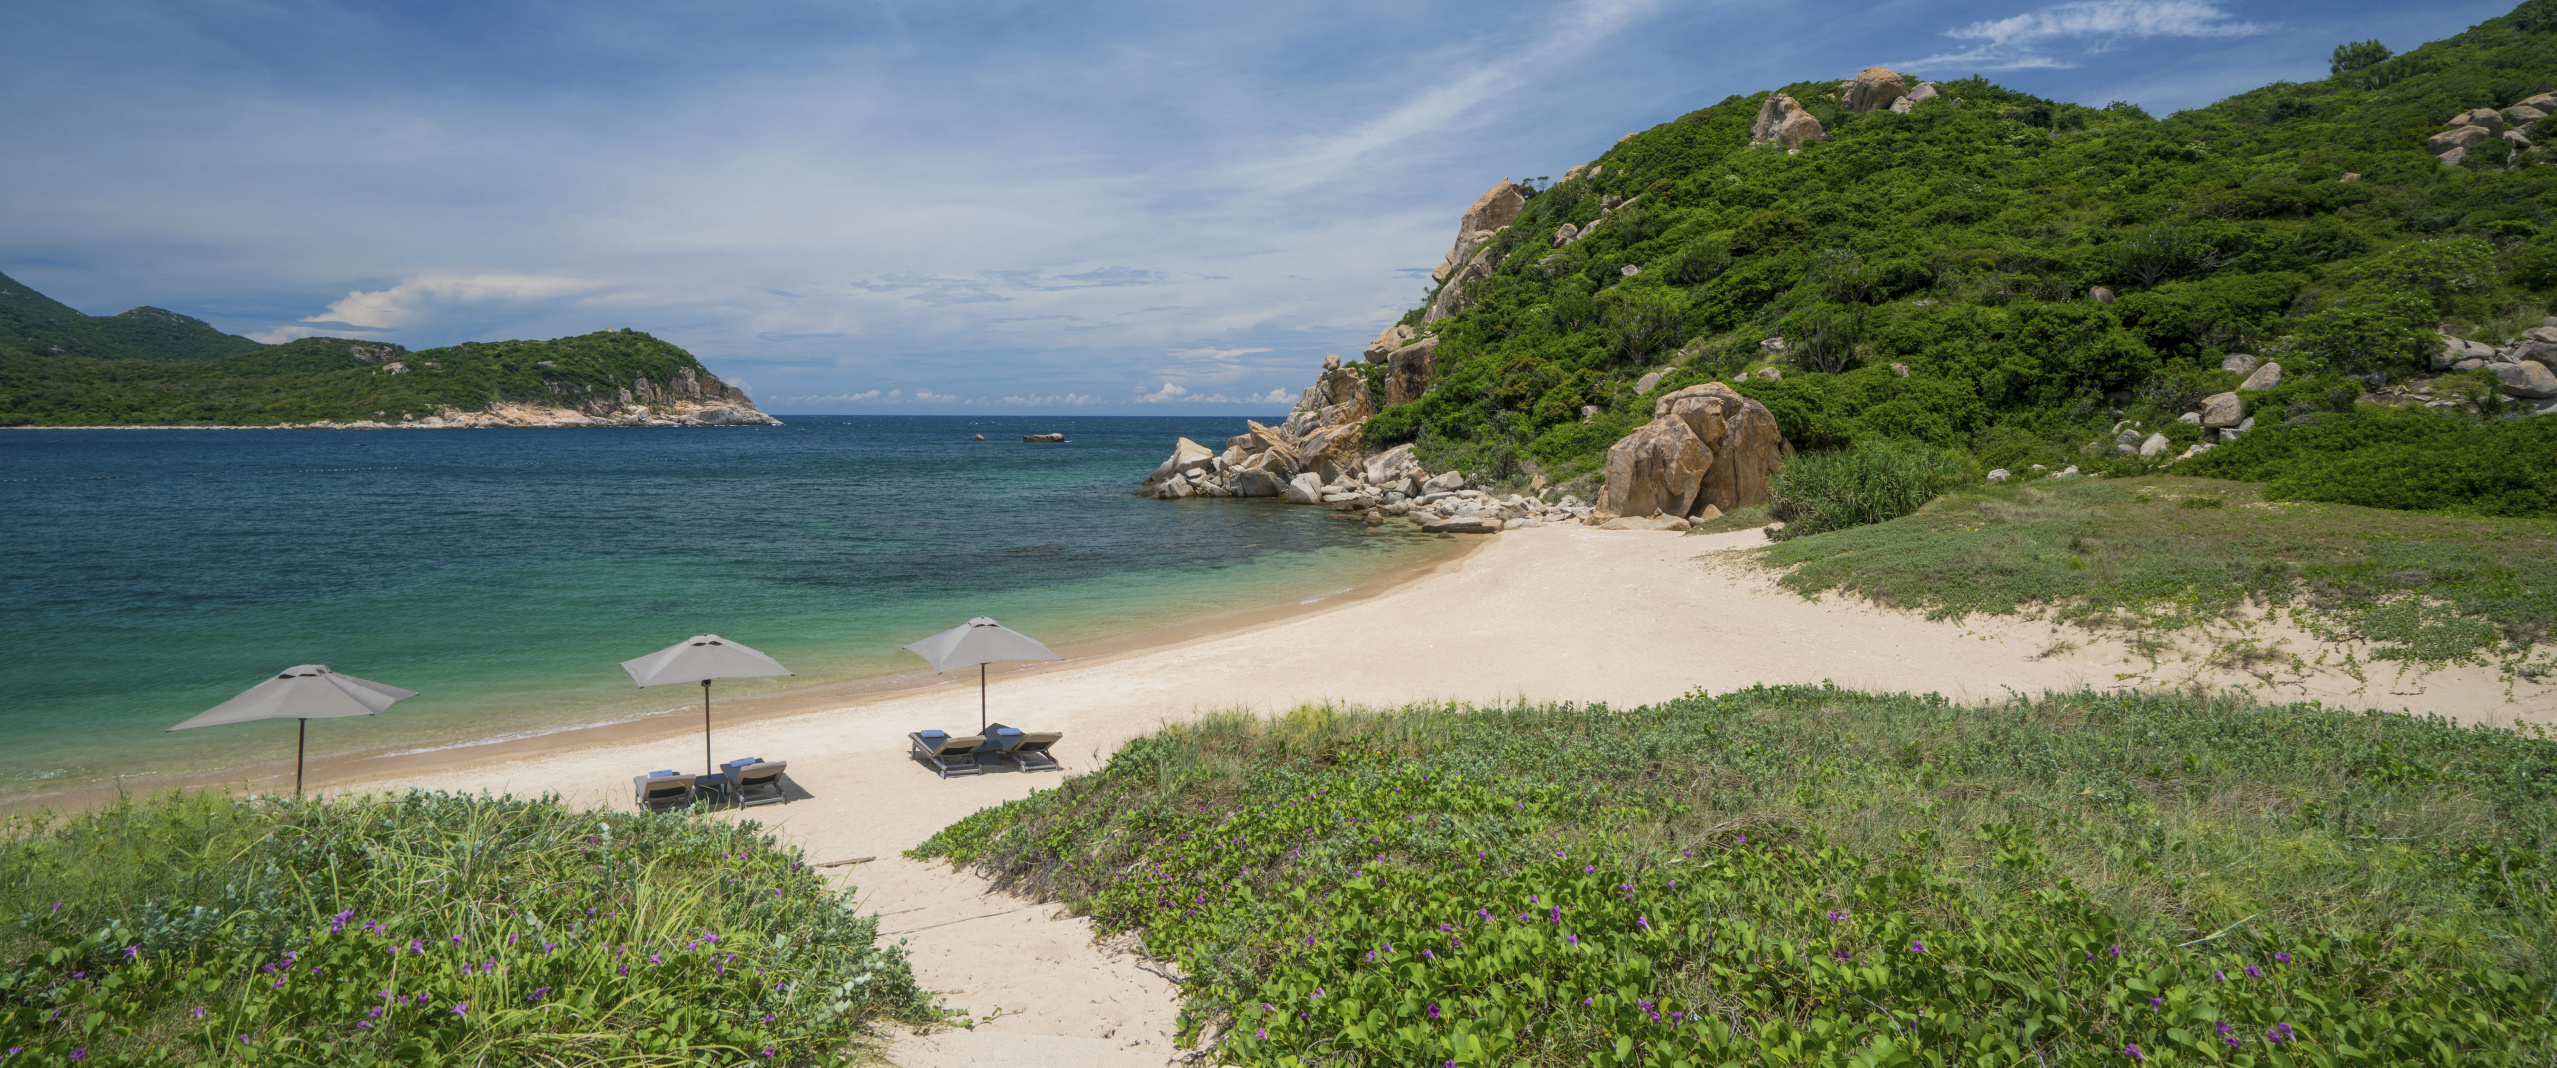 private-beach-vietnam-amanoi